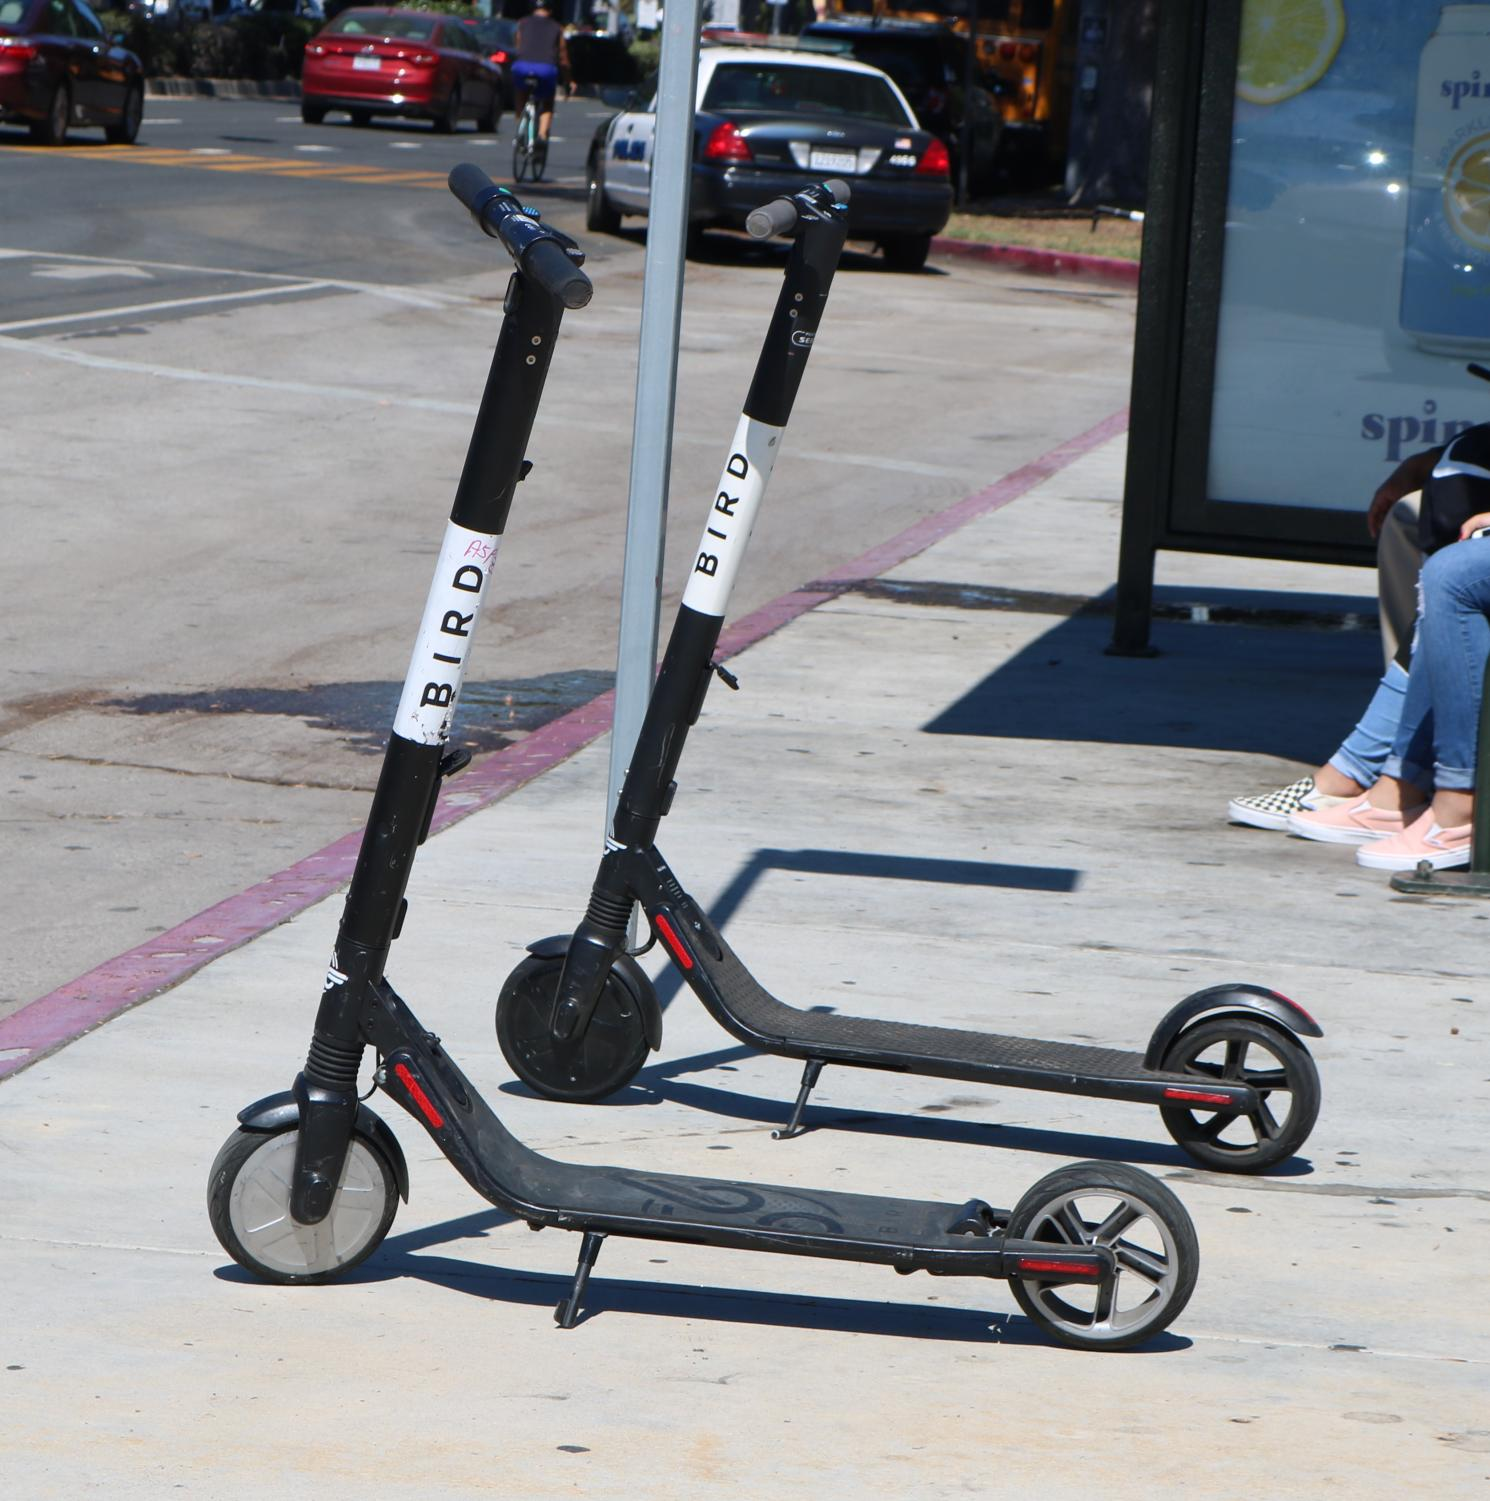 BIRD scooters parked in front of campus.